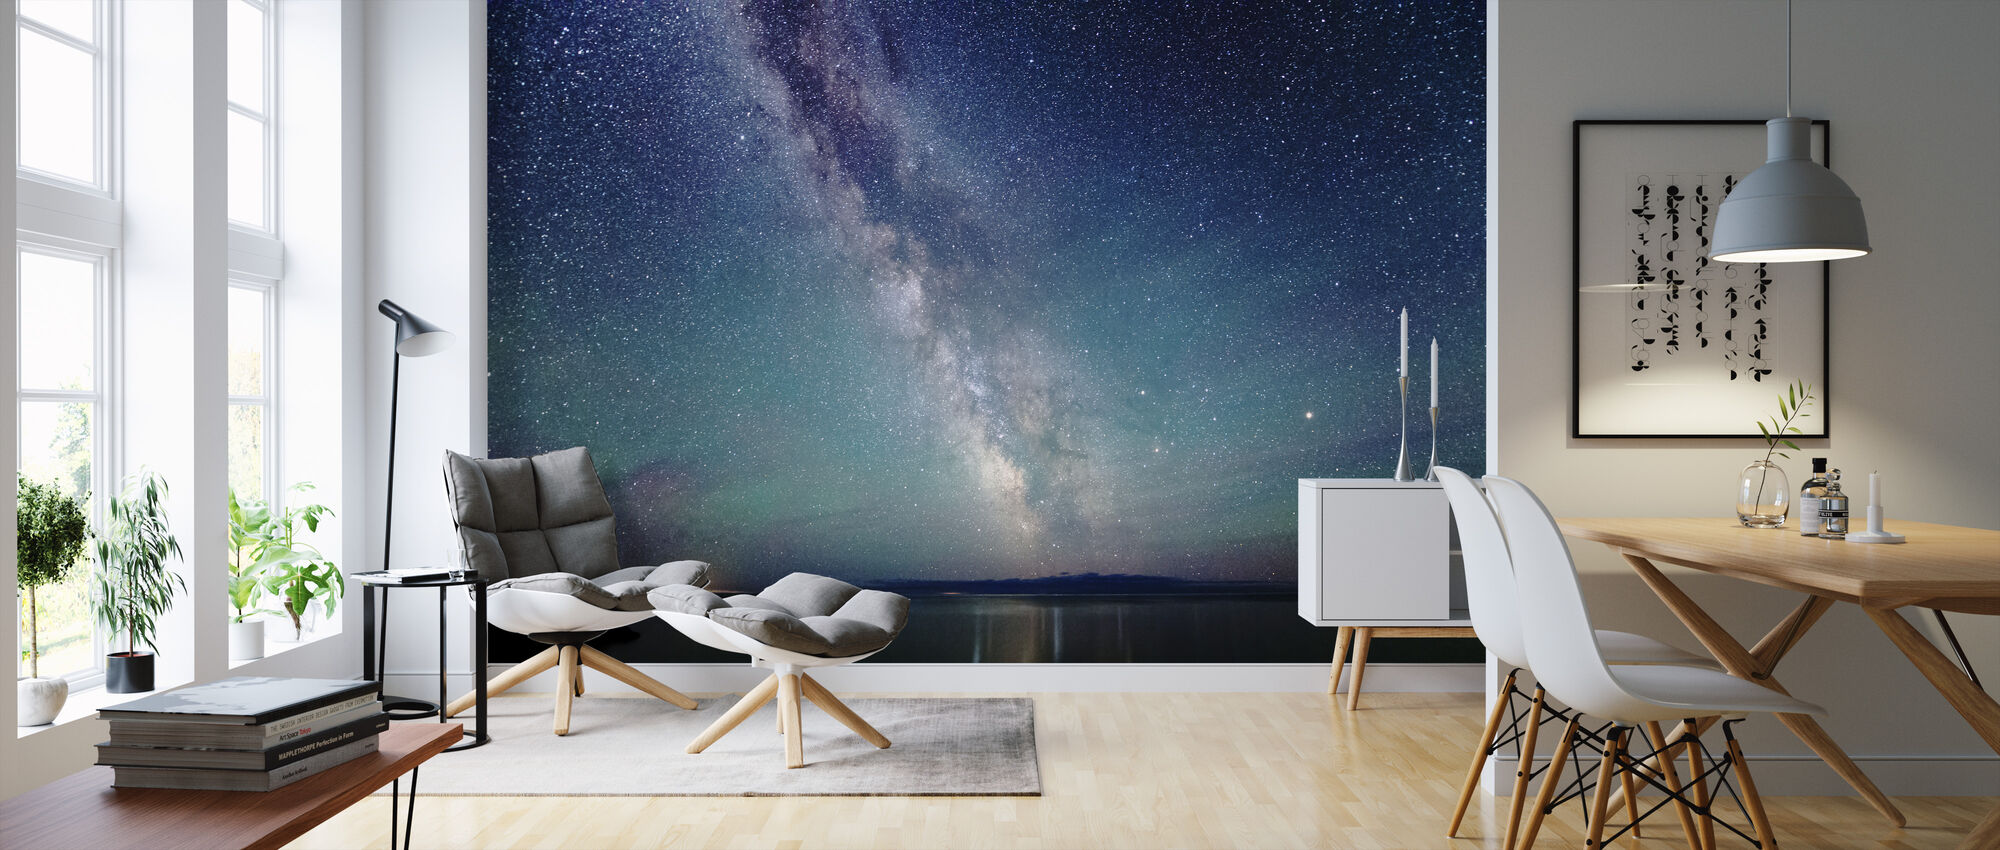 Milky Way Night Sky - Wallpaper - Living Room